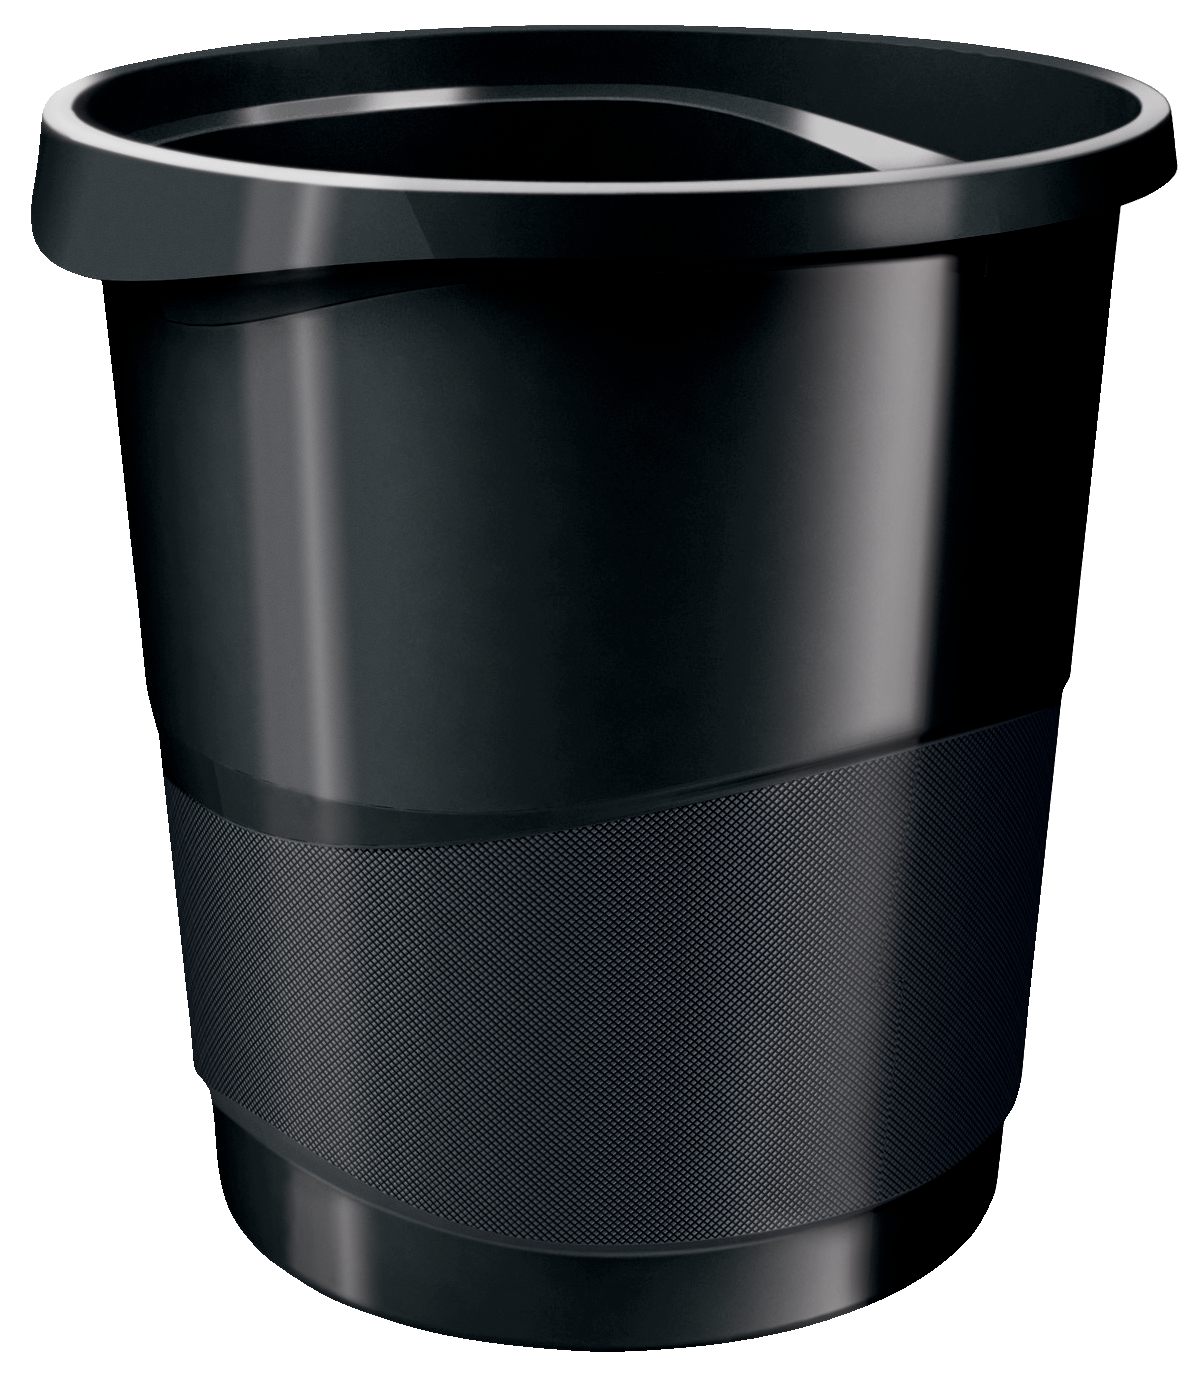 Rexel Choices Waste Bin Black